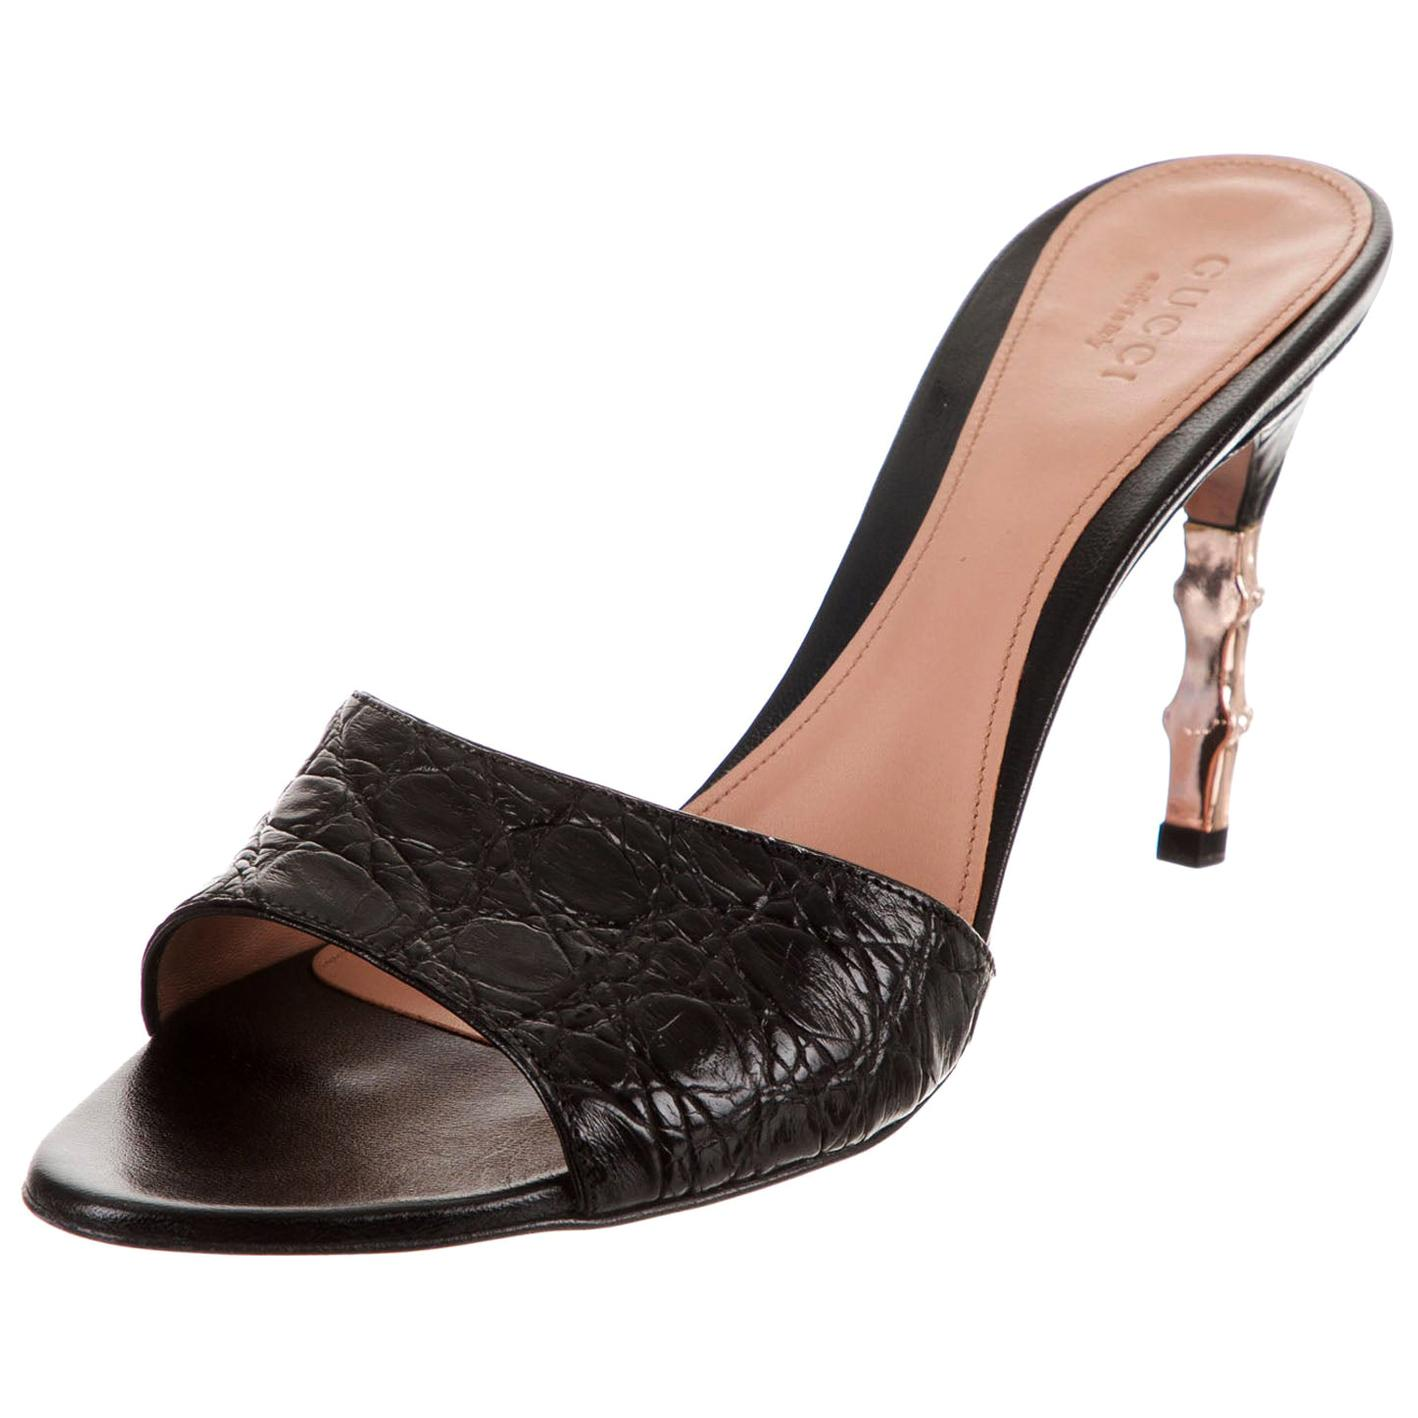 New Tom Ford for Gucci S/S 2004 Genuine Crocodile Black Bamboo Heeled Shoes 8 B